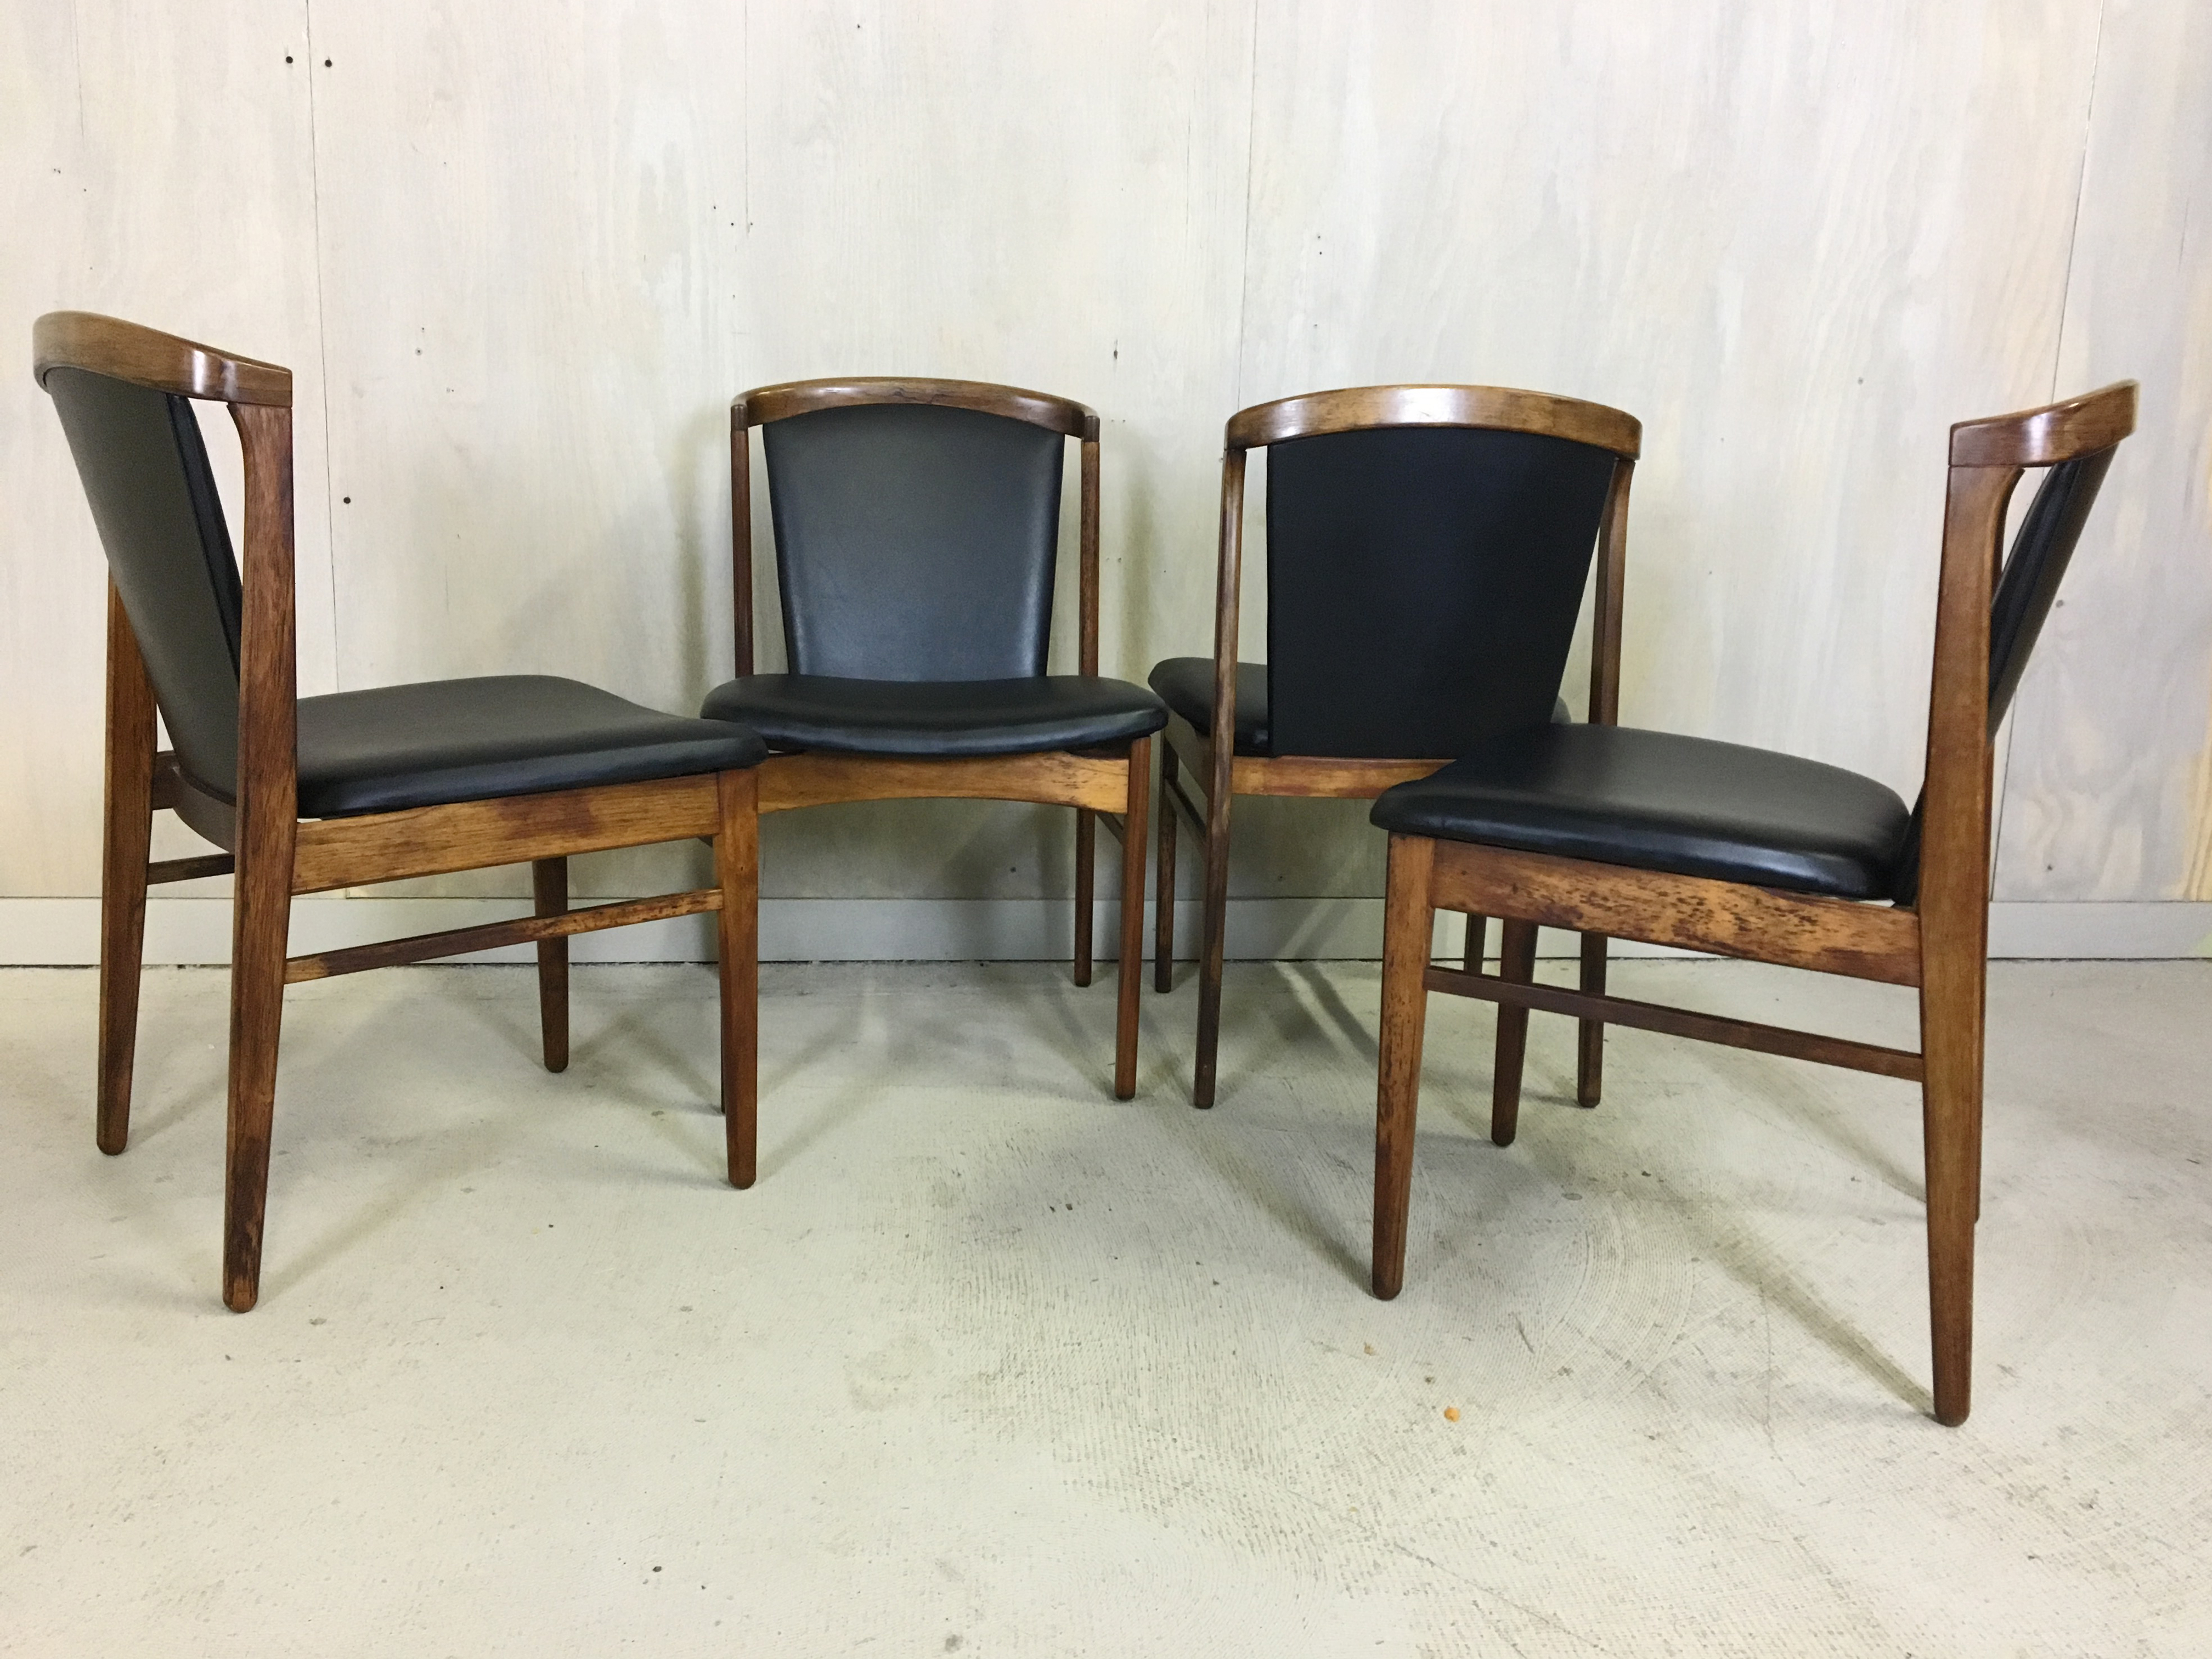 Set of 4 Erik Buch Rosewood Dining Chairs